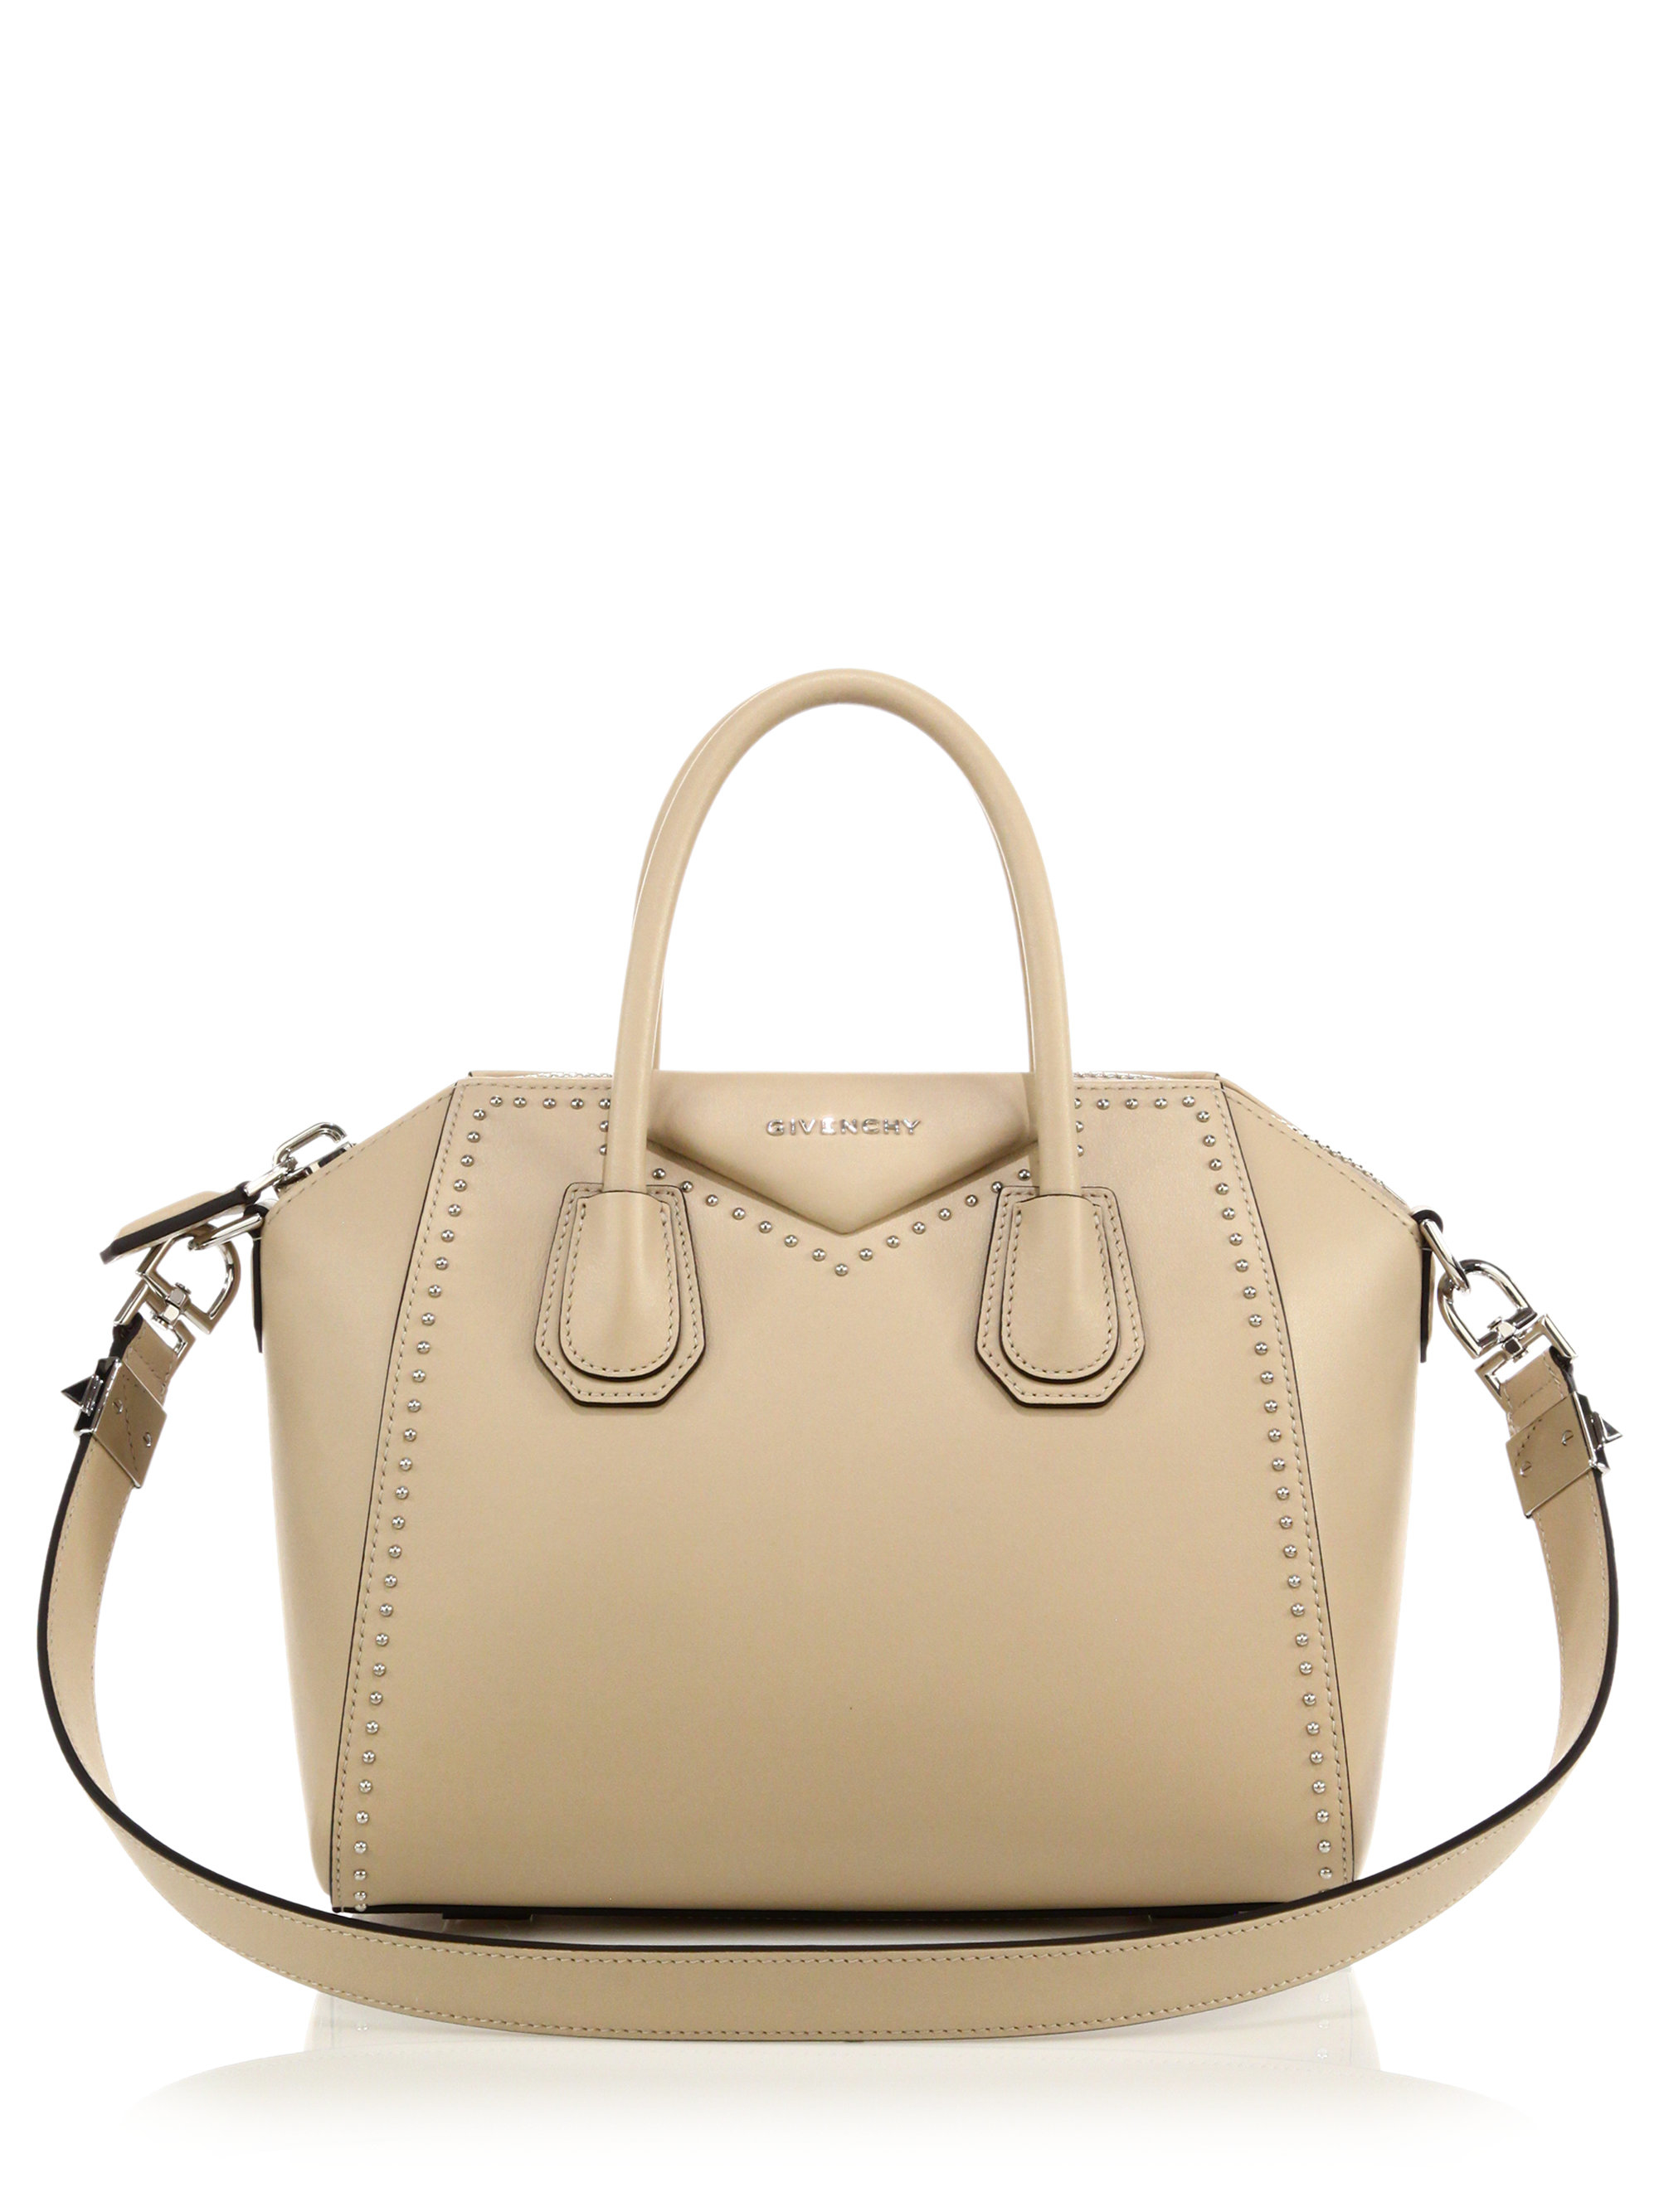 ef63352adb85 Lyst - Givenchy Antigona Small Studded Leather Satchel in Natural